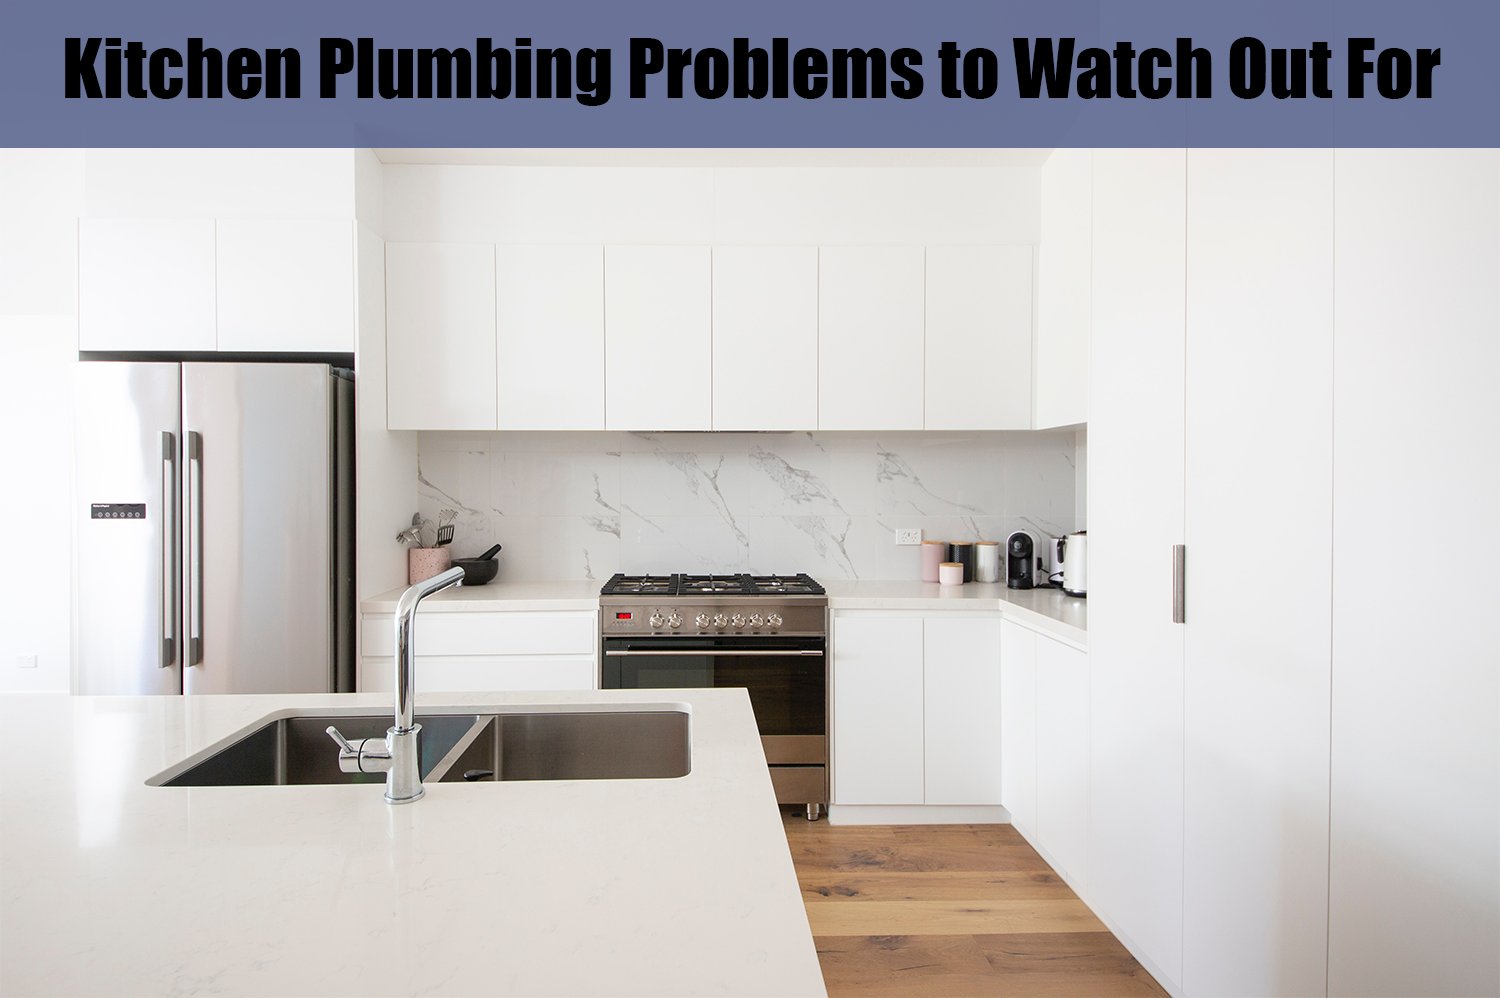 A clean white kitchen; to keep clean, it's important to watch out for kitchen plumbing problems.